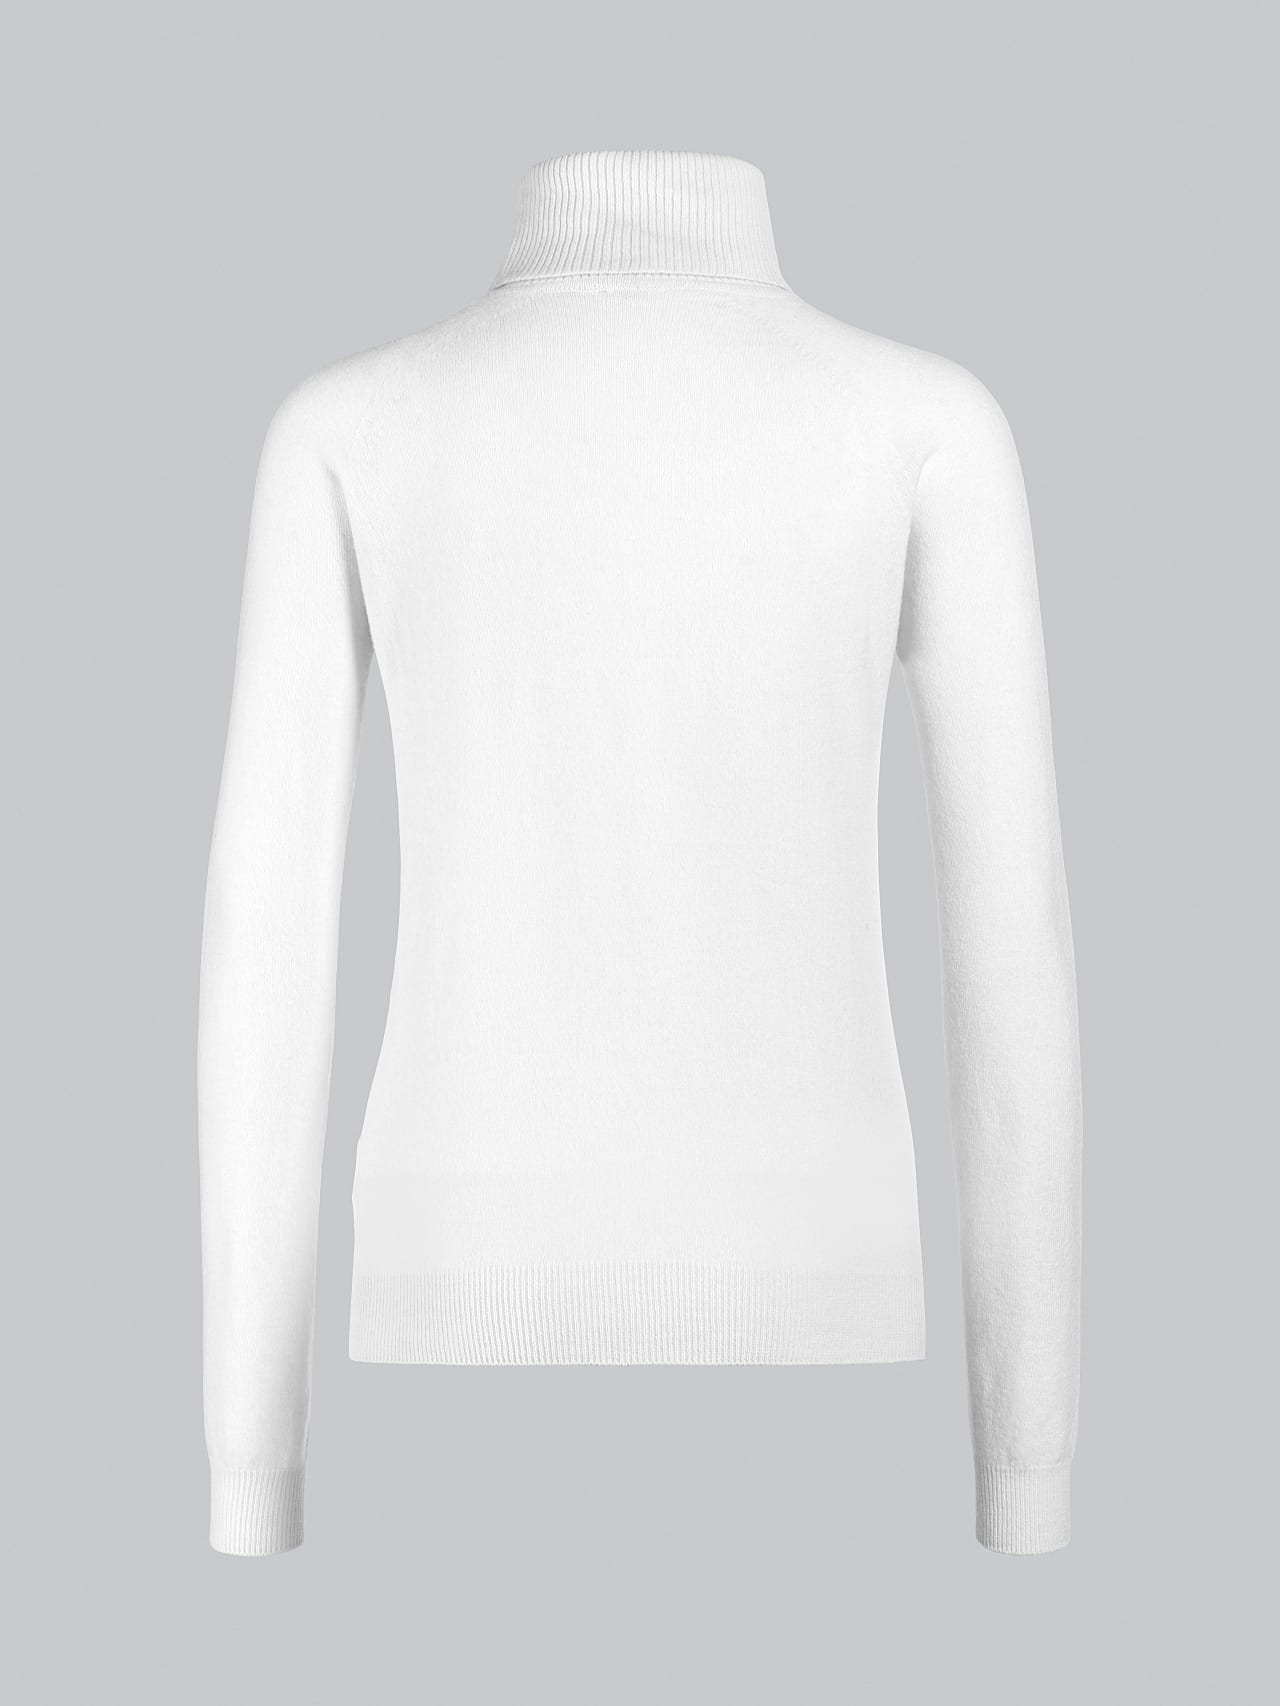 FLAMY V1.Y5.02 Seamless 3D Knit Merino-Cashmere Turtle Neck offwhite Left Alpha Tauri